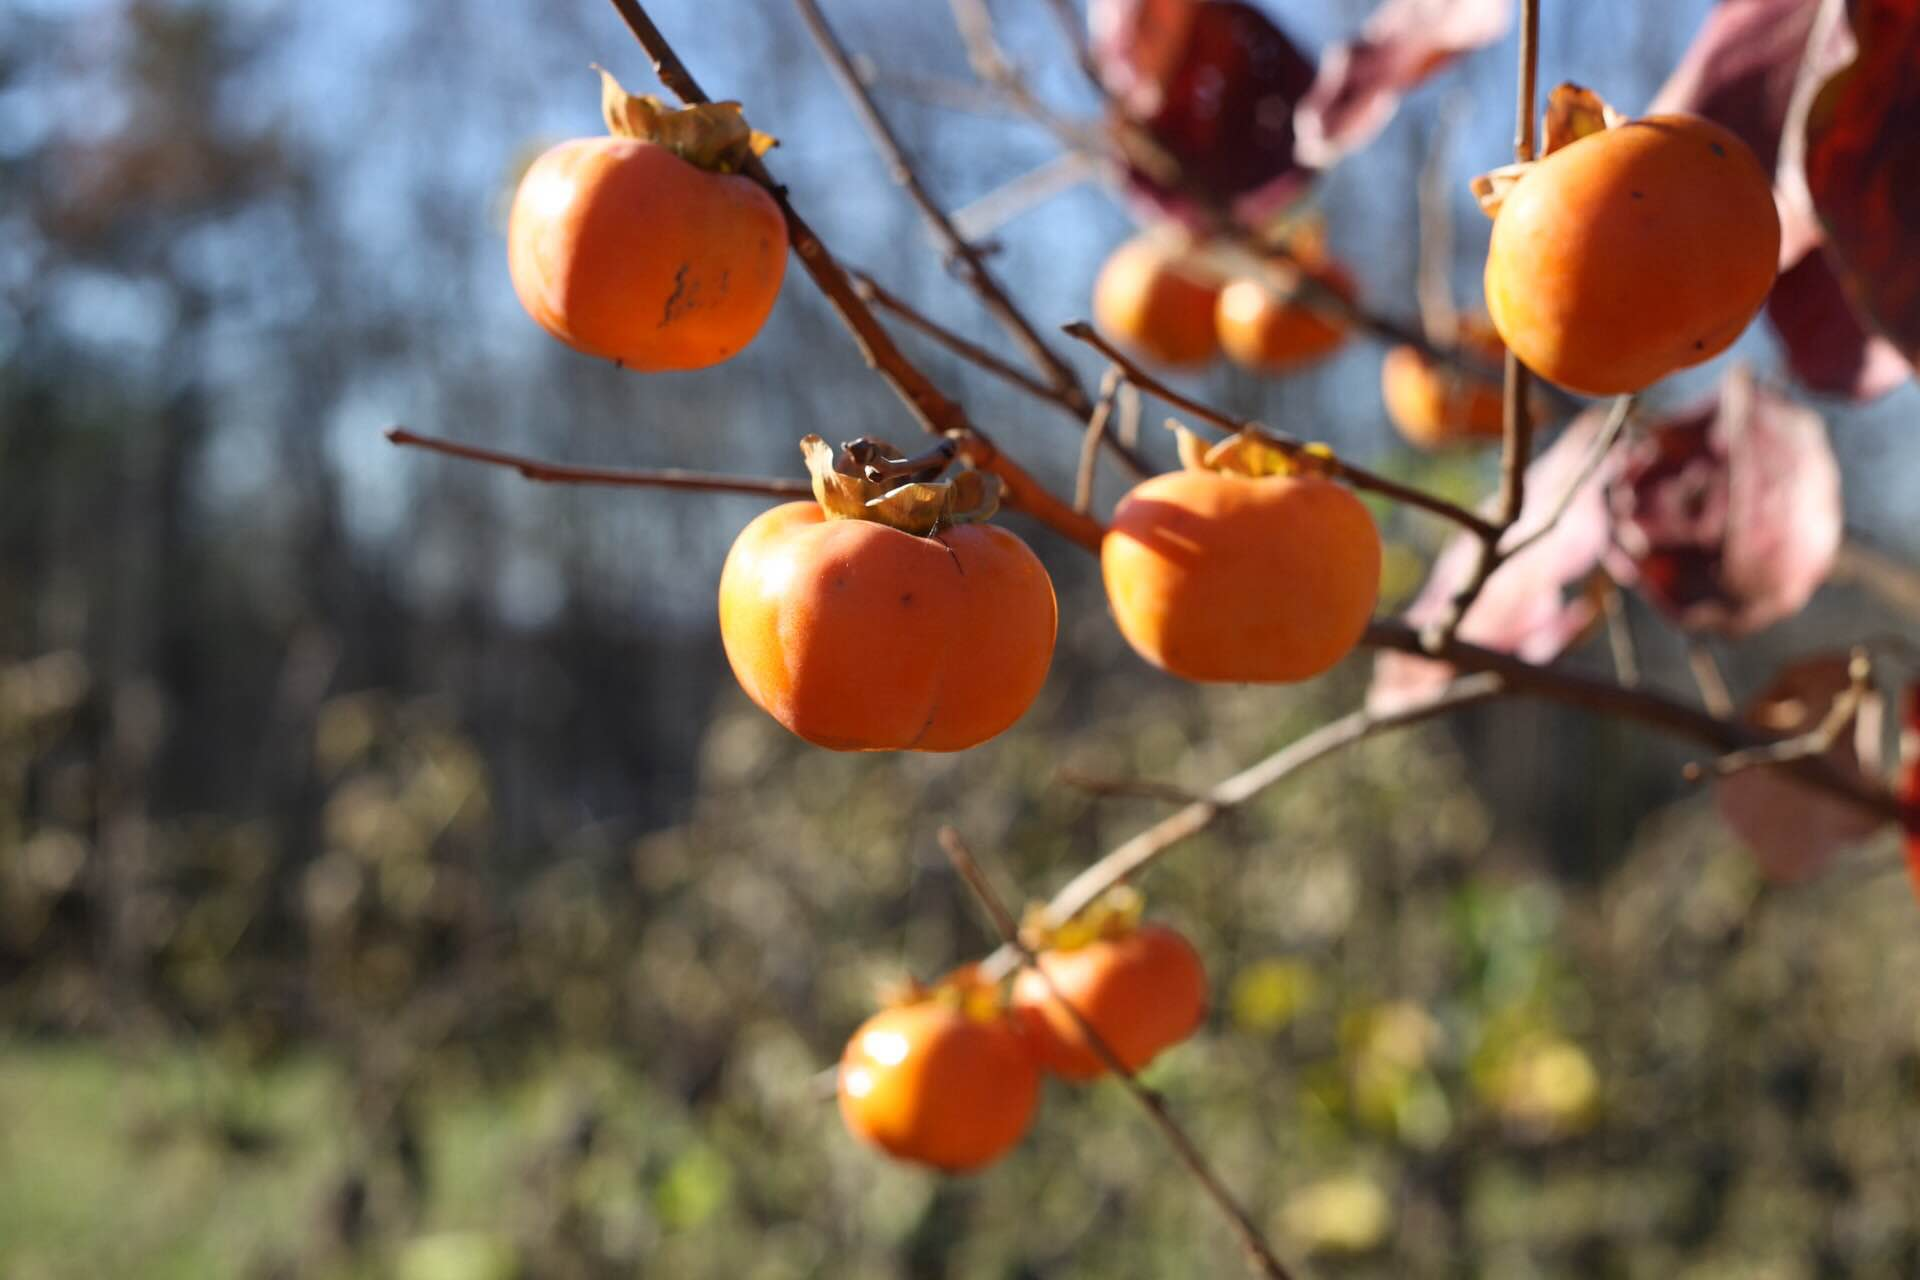 Persimmons hang like little ornaments waiting to be picked. I'm told that these will hang even on into December like this.